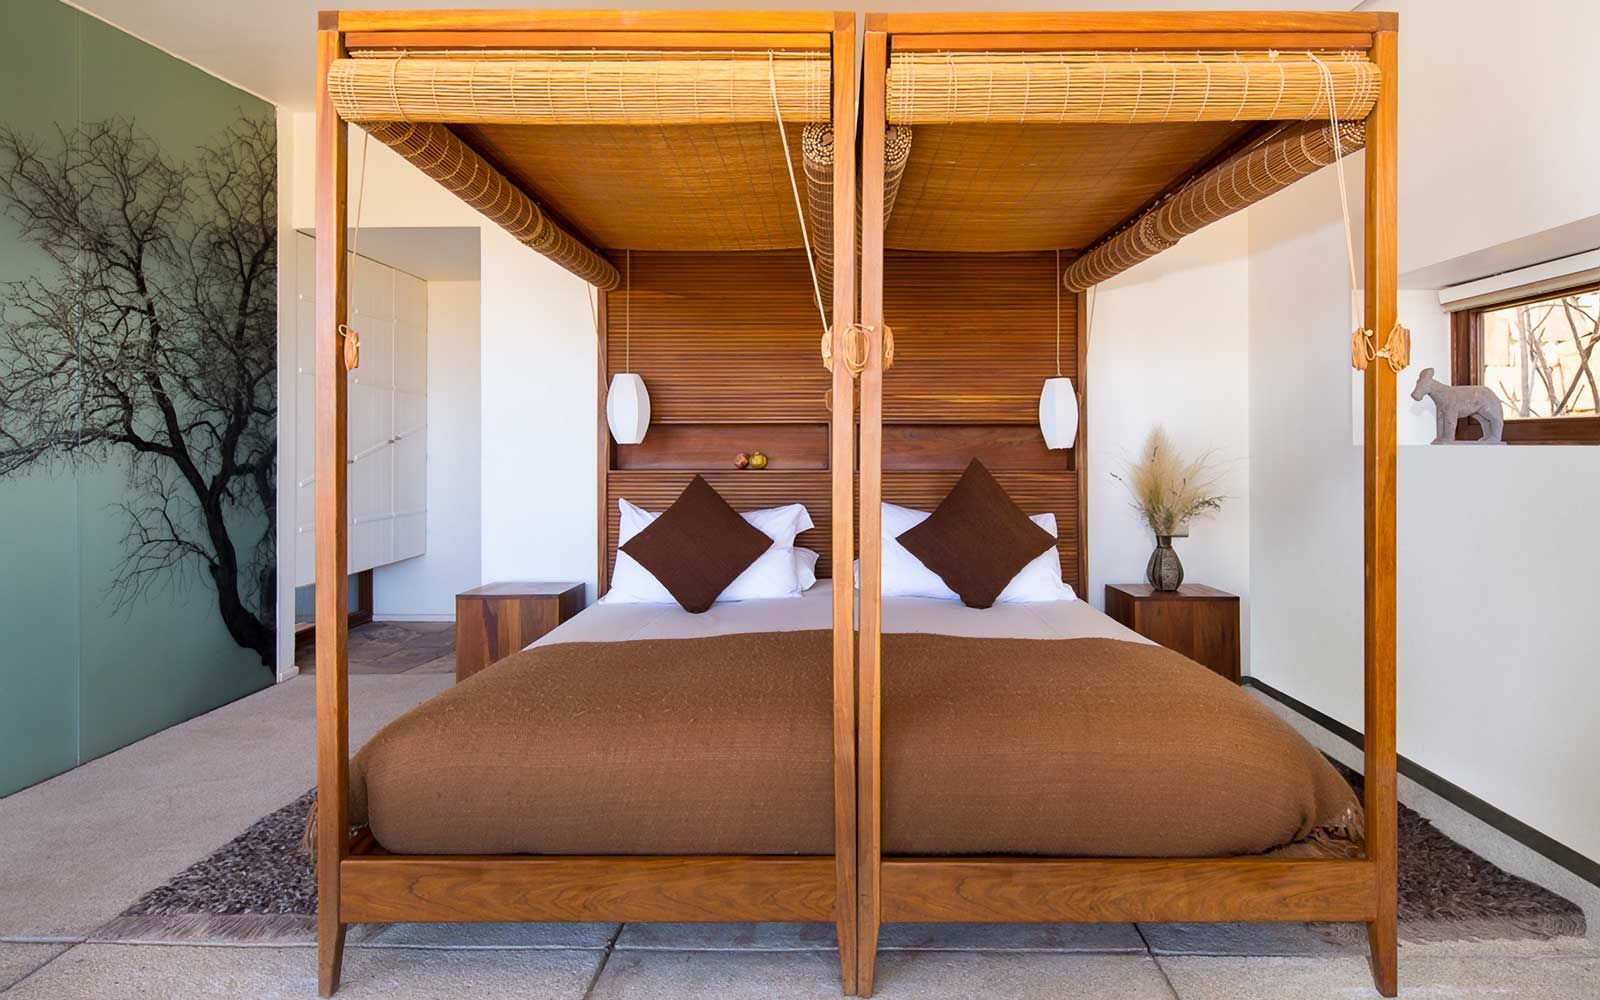 Resorts in South America World's Best 2019 Commercial